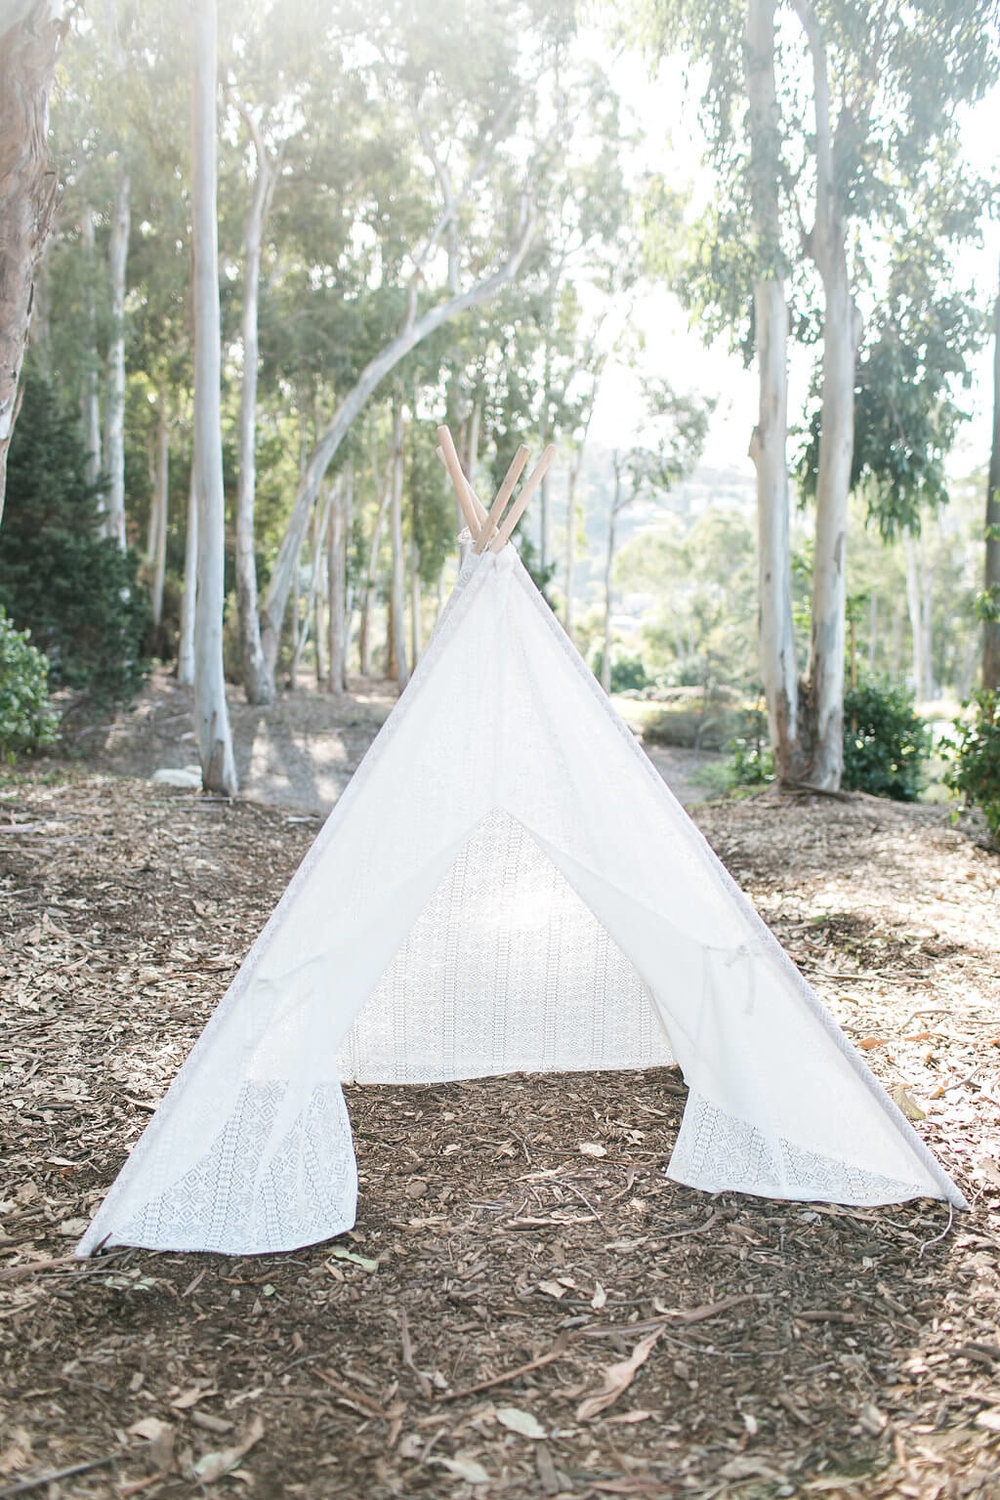 Bohemian Lace Tipi 1 - Provenance Vintage Rentals Los Angeles Bohemian Wedding Decor Boho Baby Shower Boho Vintage Lace Tipi Rentals Los Angeles Lace Teepee Rentals Los Angeles Prop Rental Party Rental Los Angeles.jpg